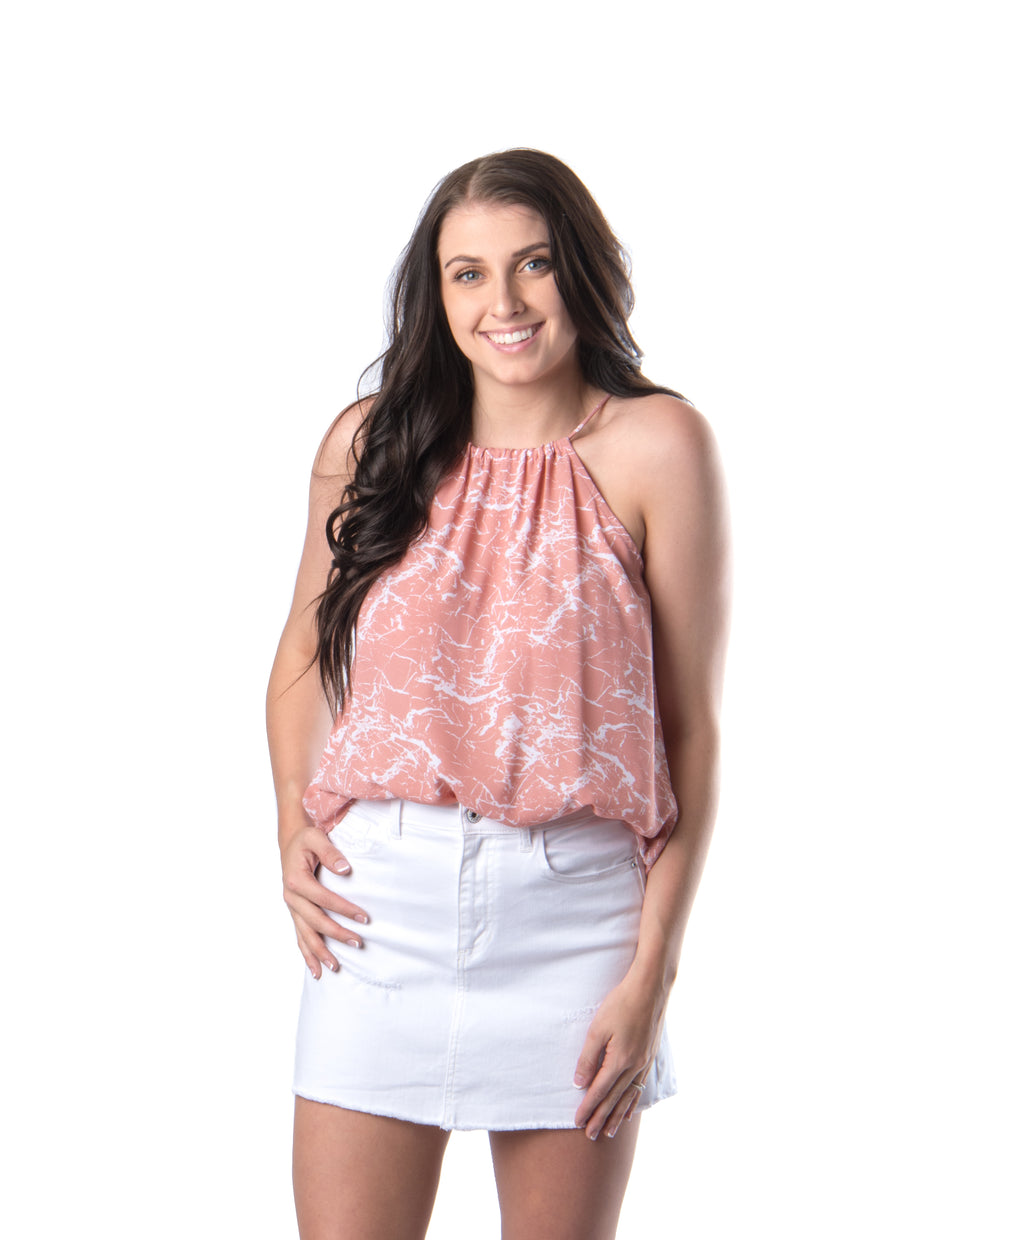 Blush Crush Top